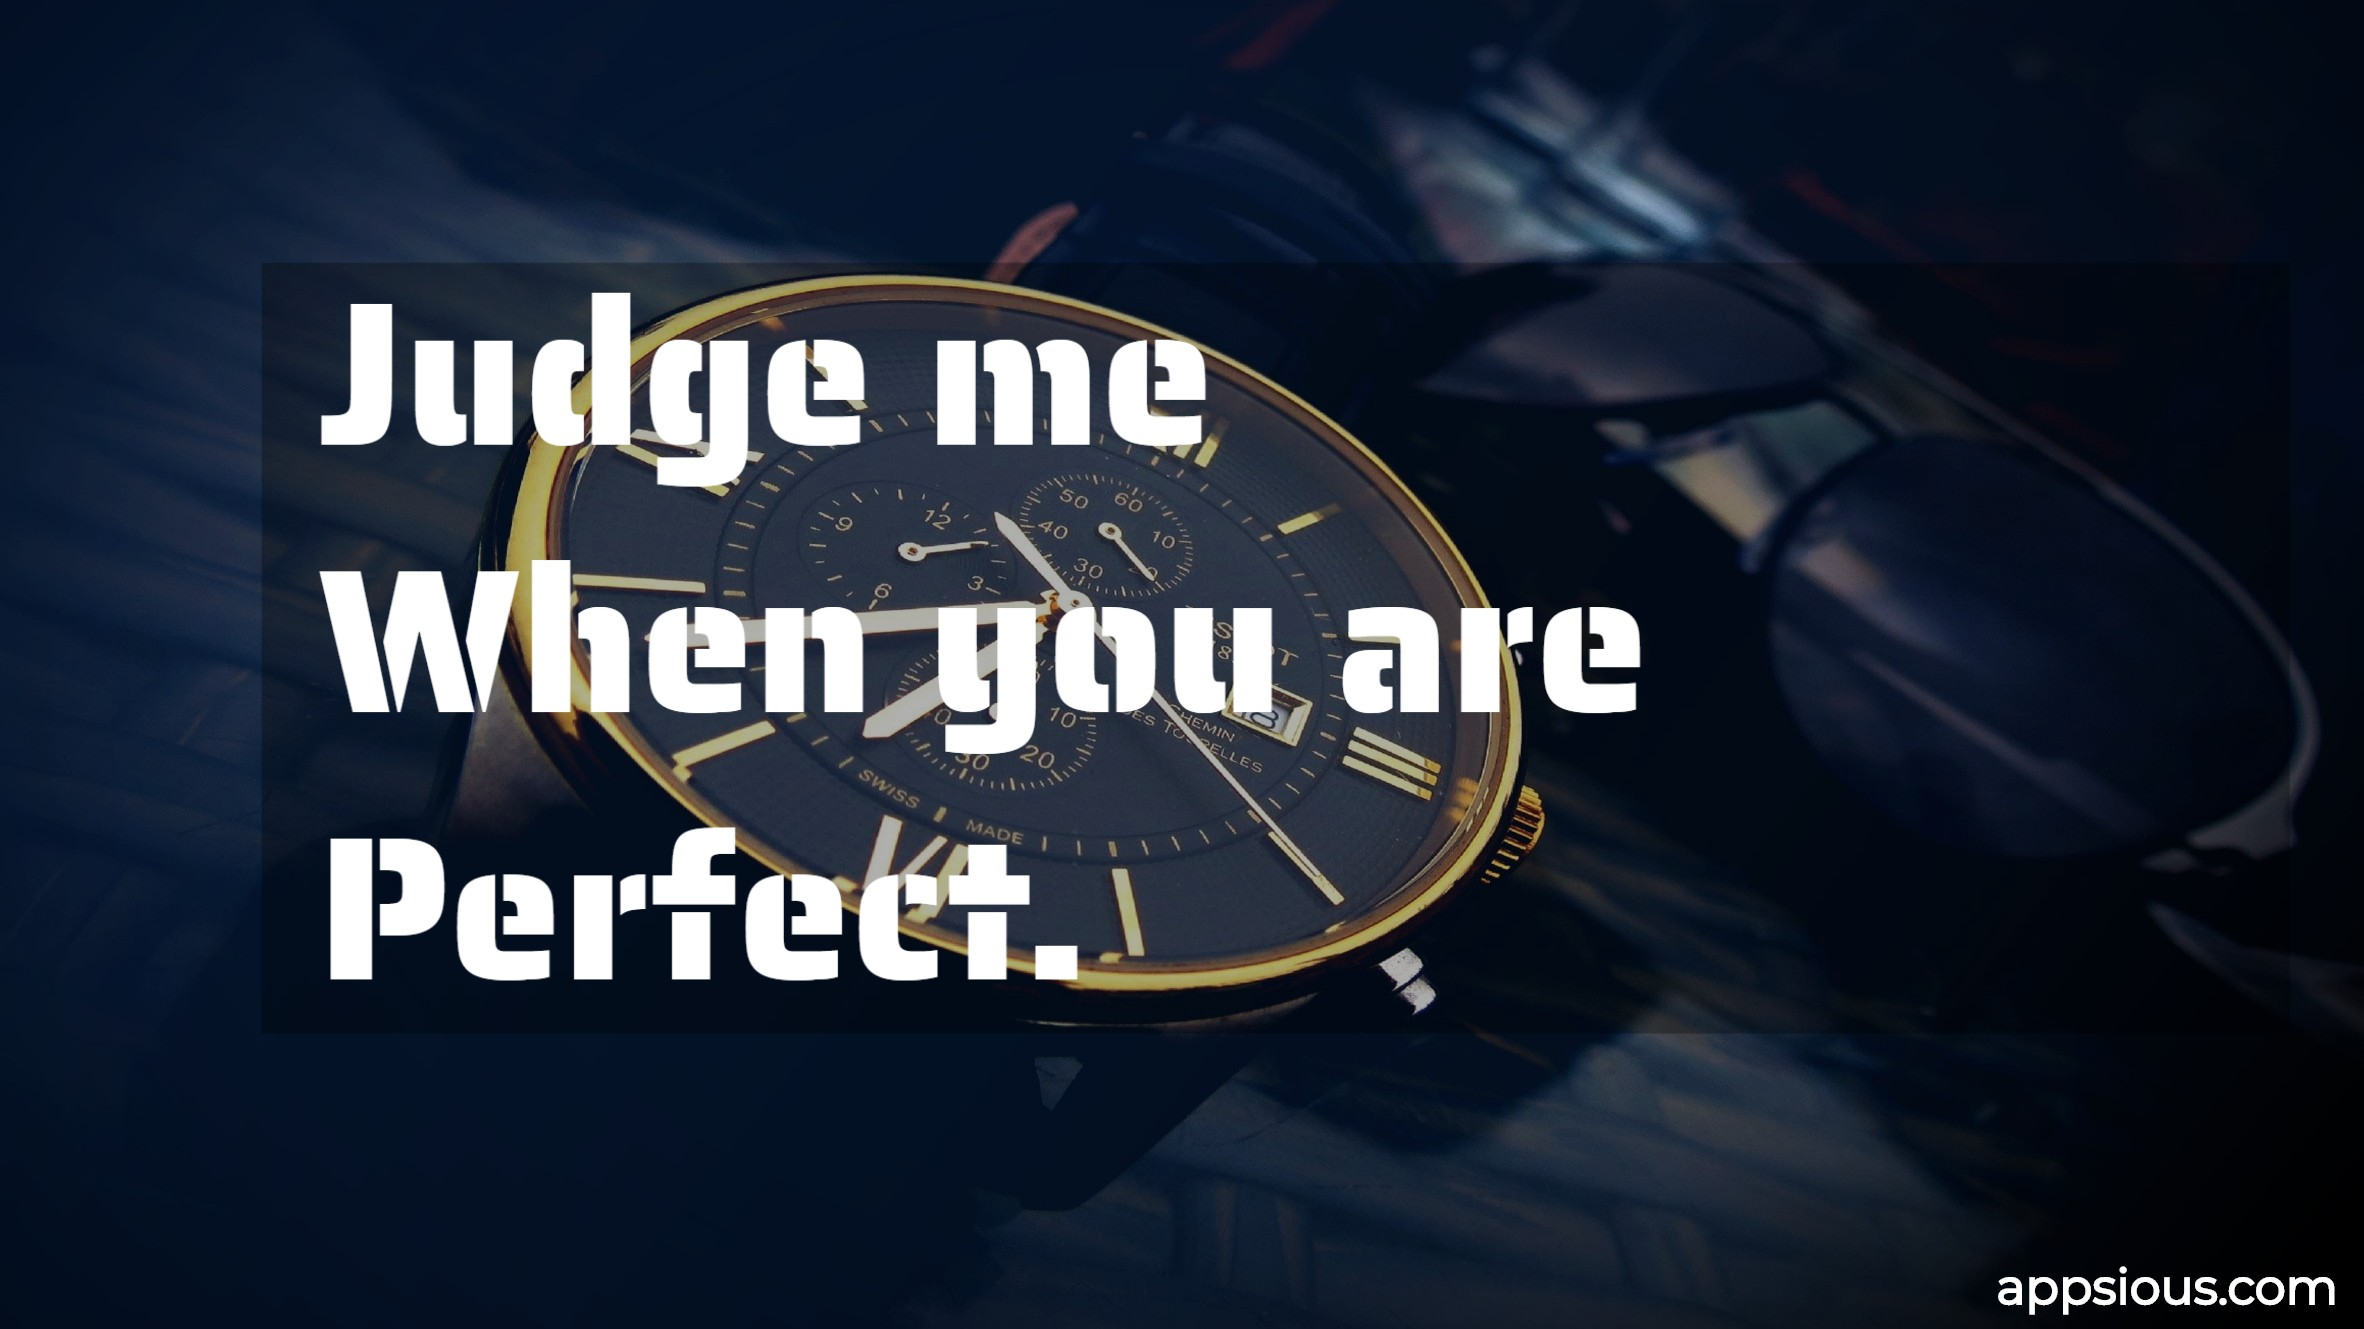 Judge me when you are perfect.